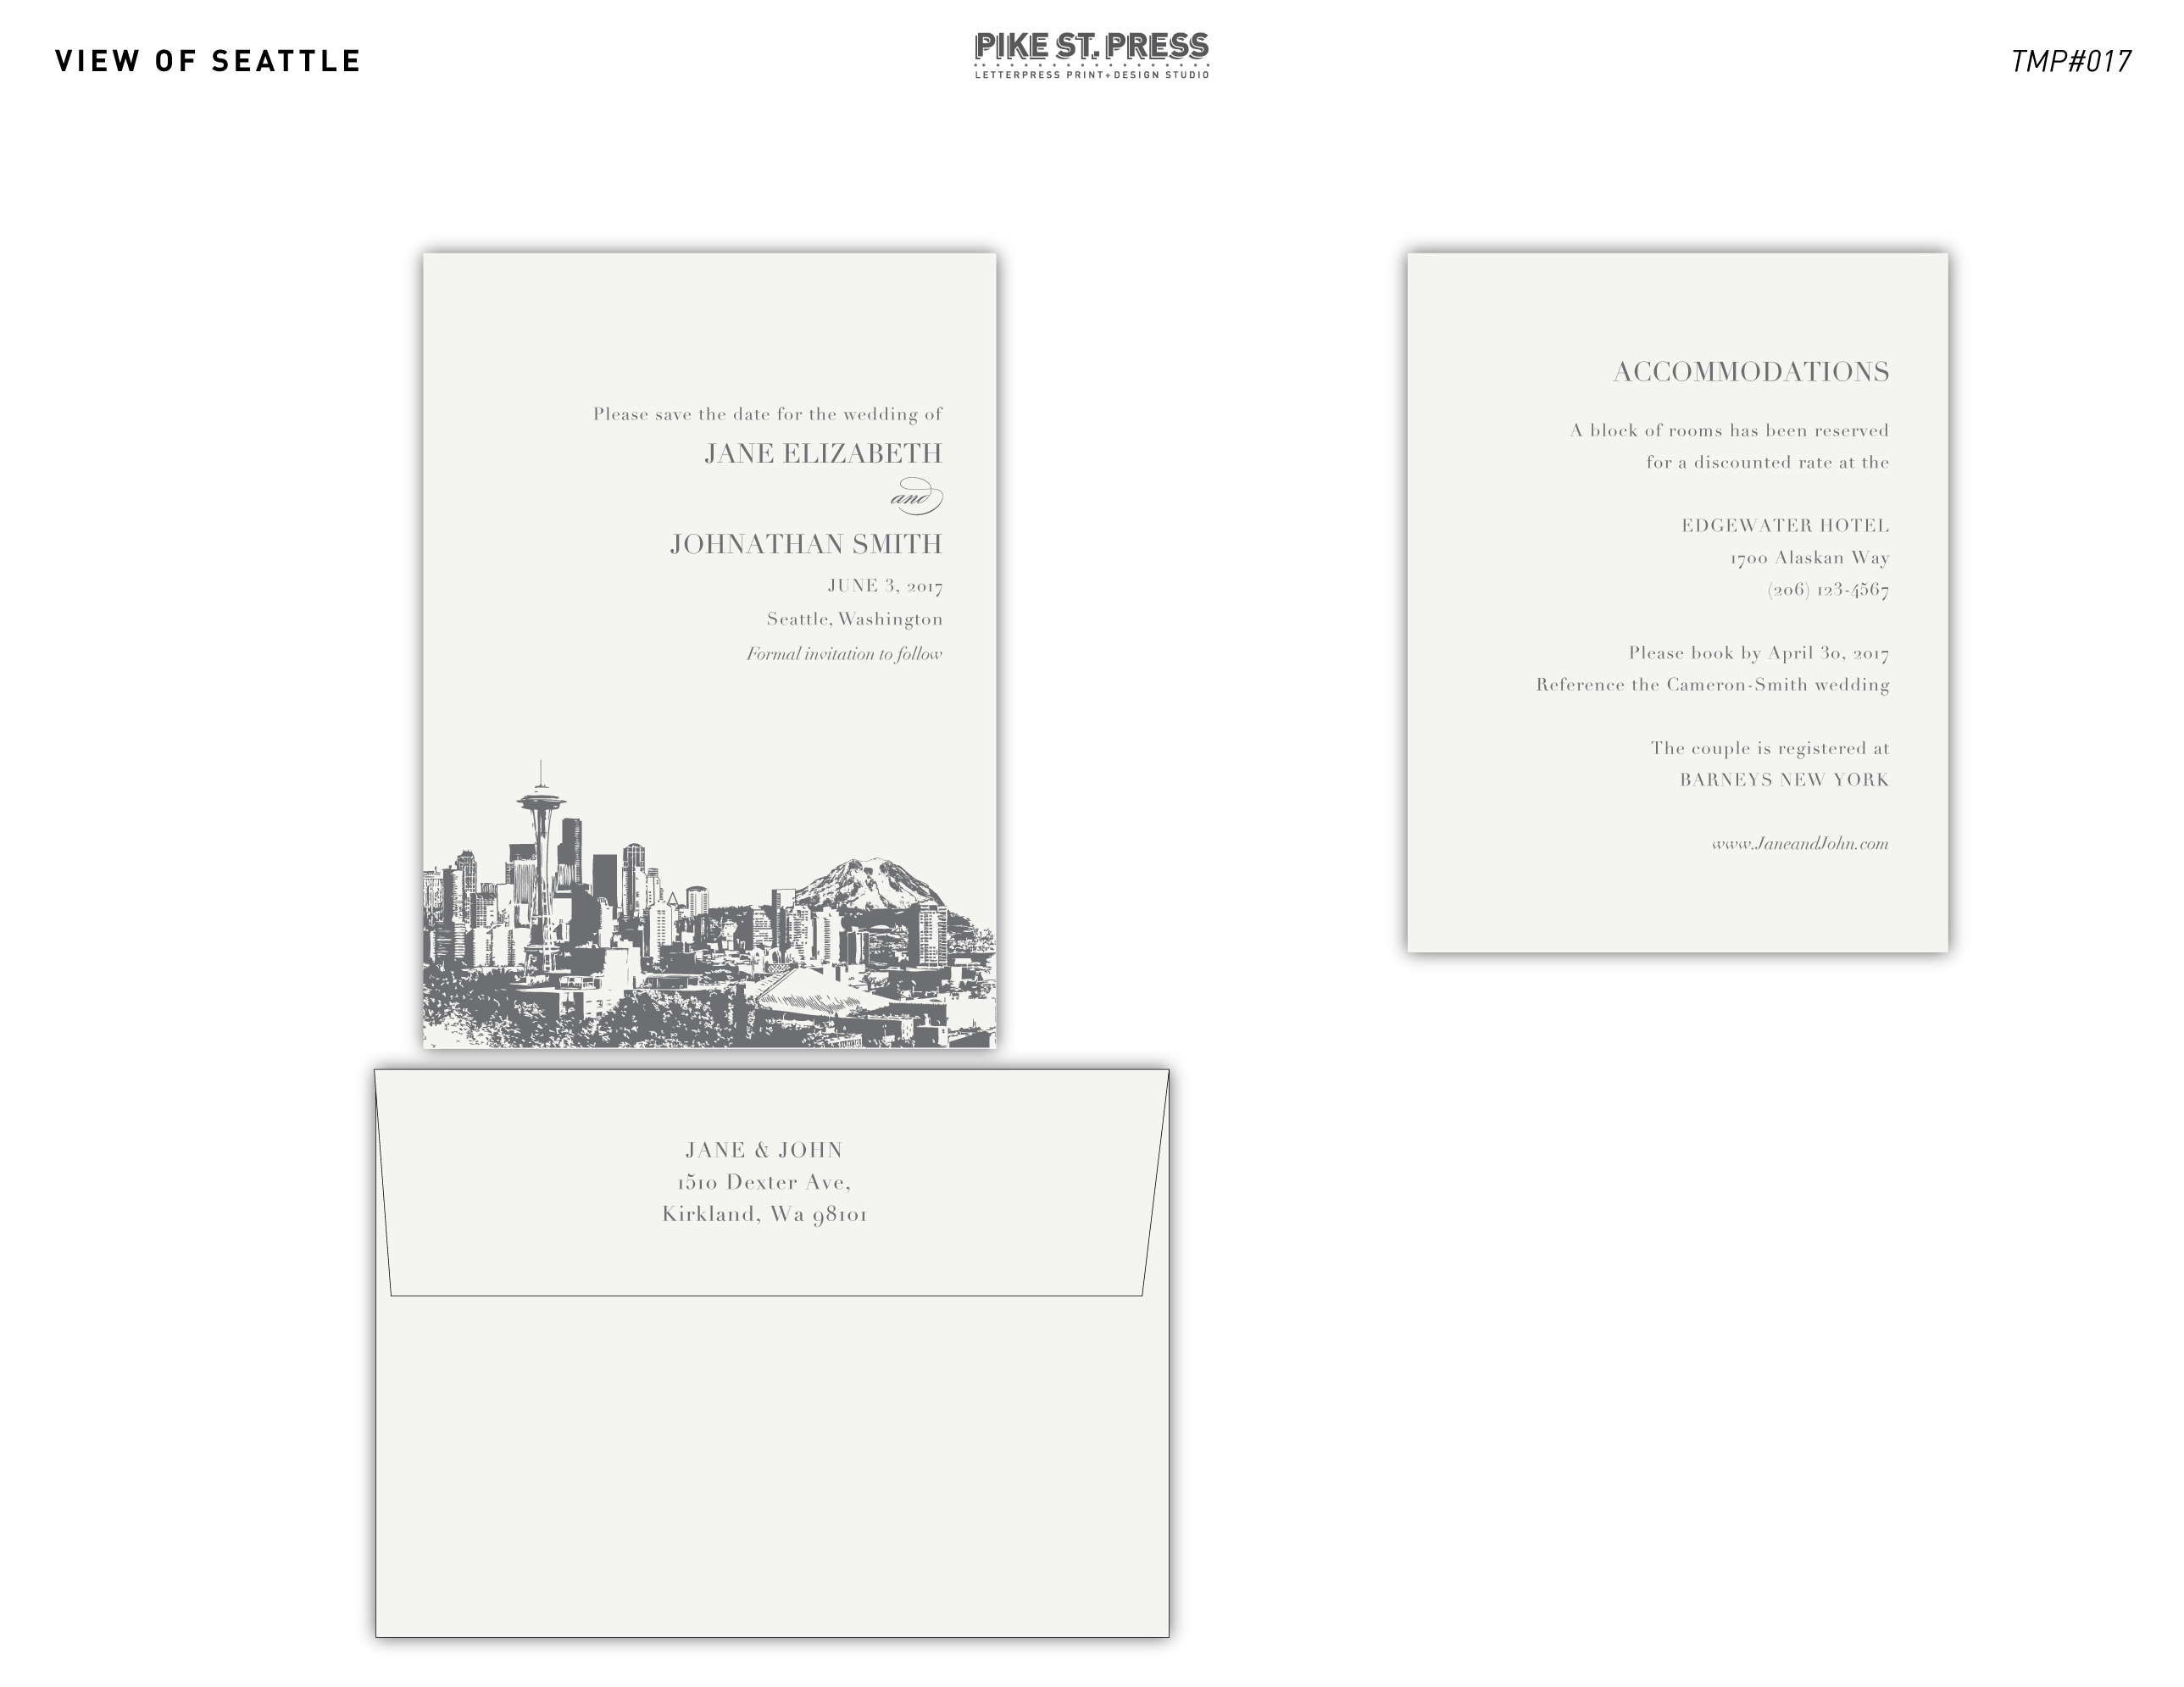 View of Seattle TMP017 – Wedding Invitation – Pike Street Press